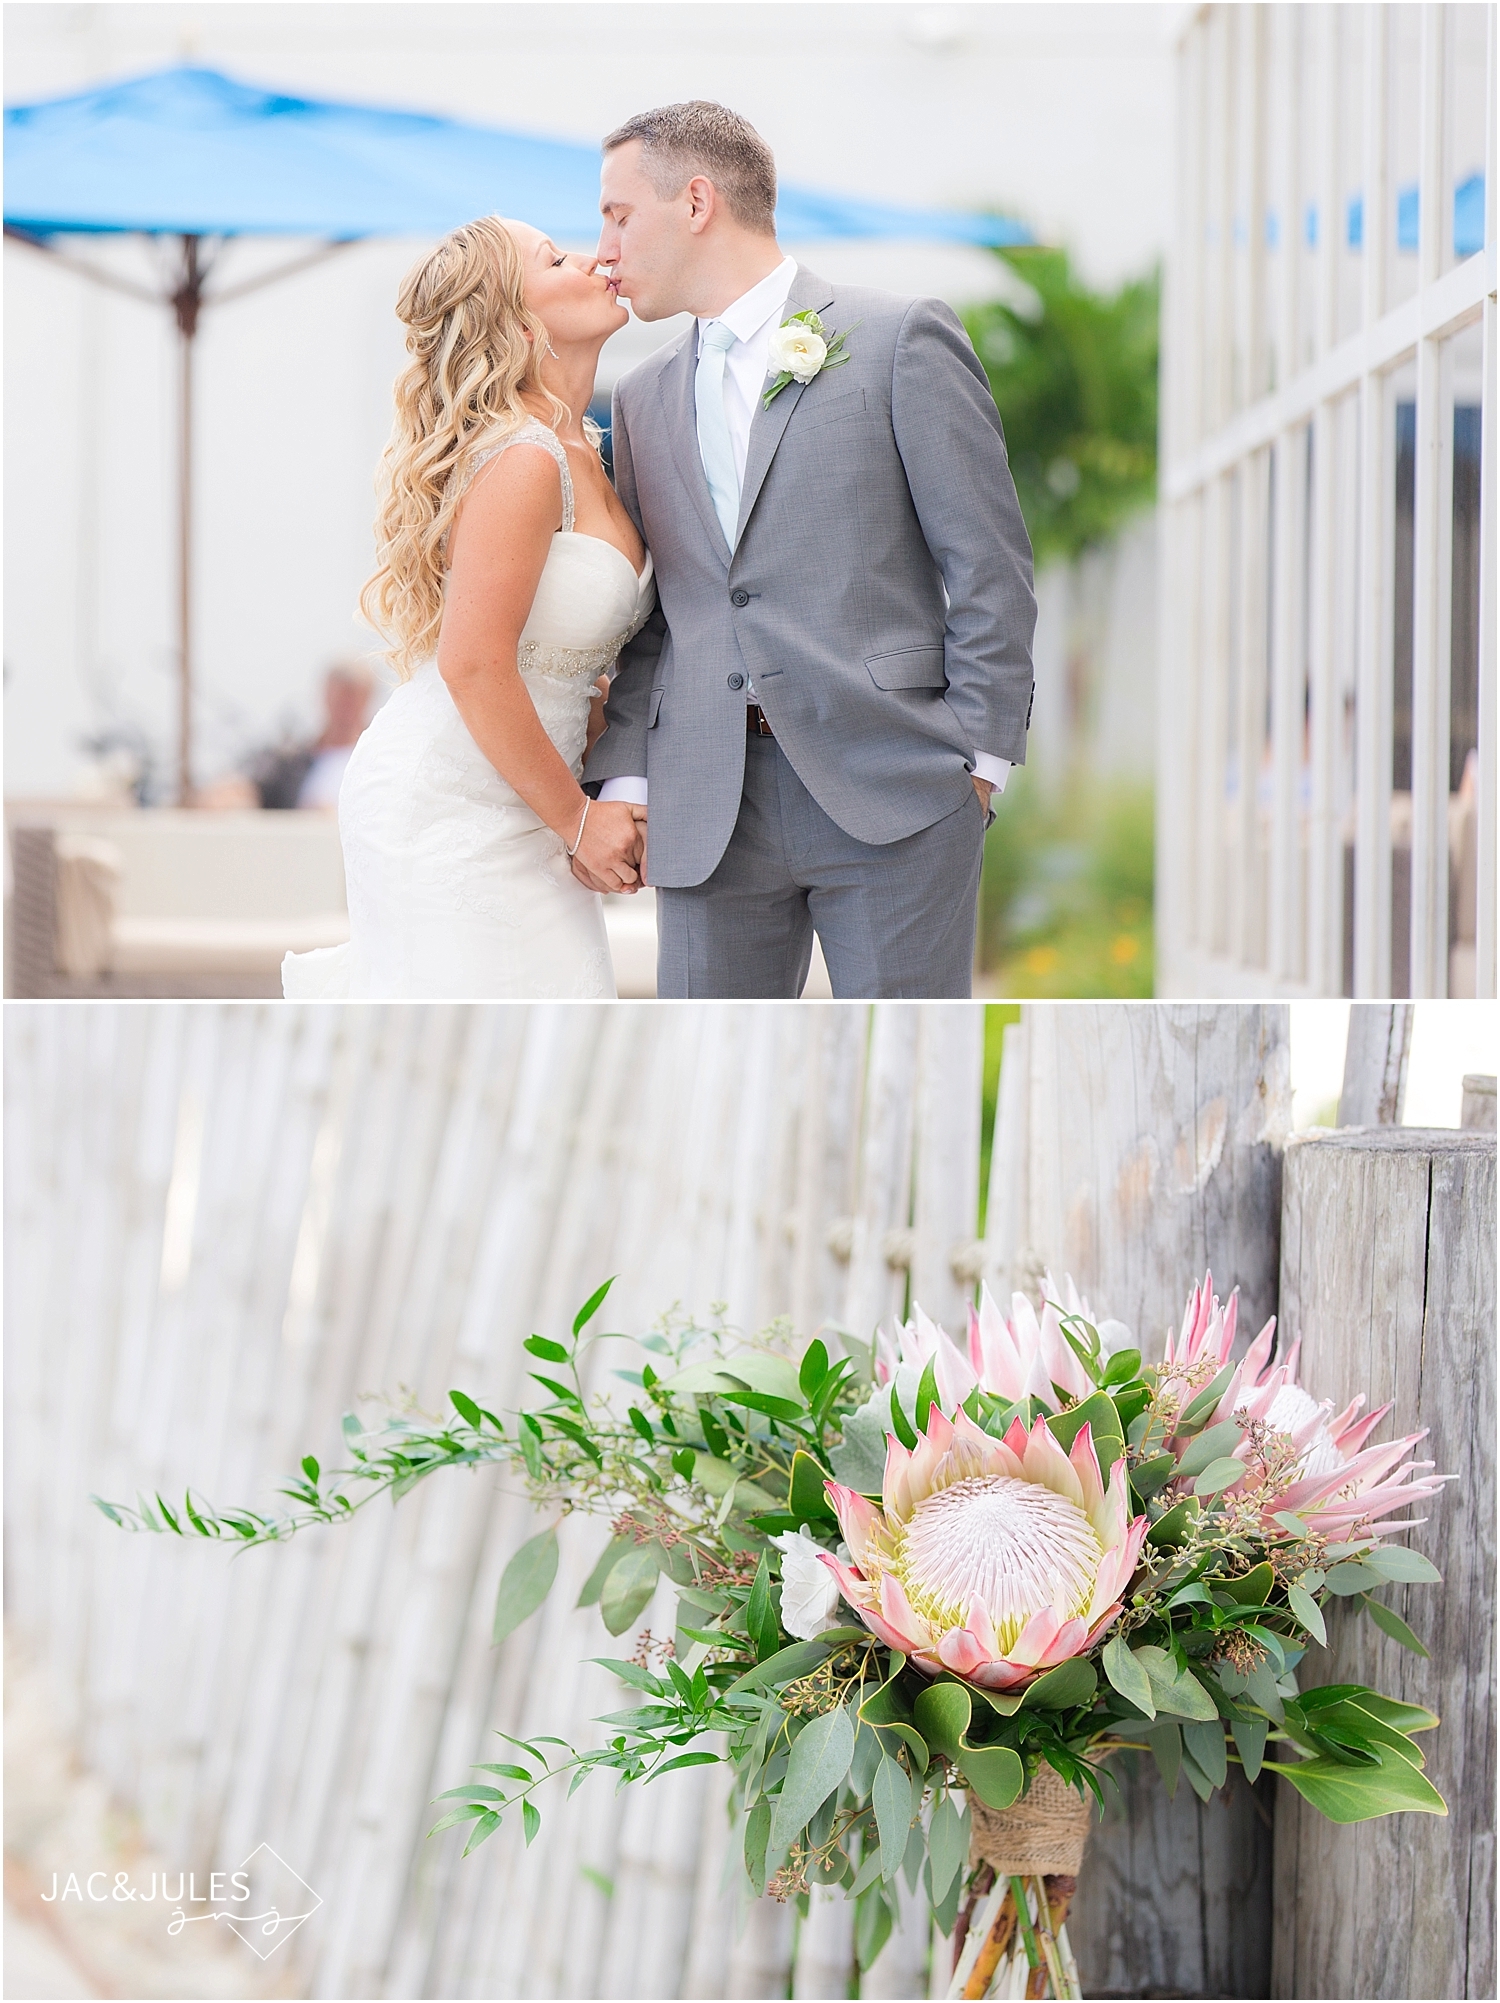 jacnjules photographs first look with bride and groom at Ocean Place in Long Branch, NJ